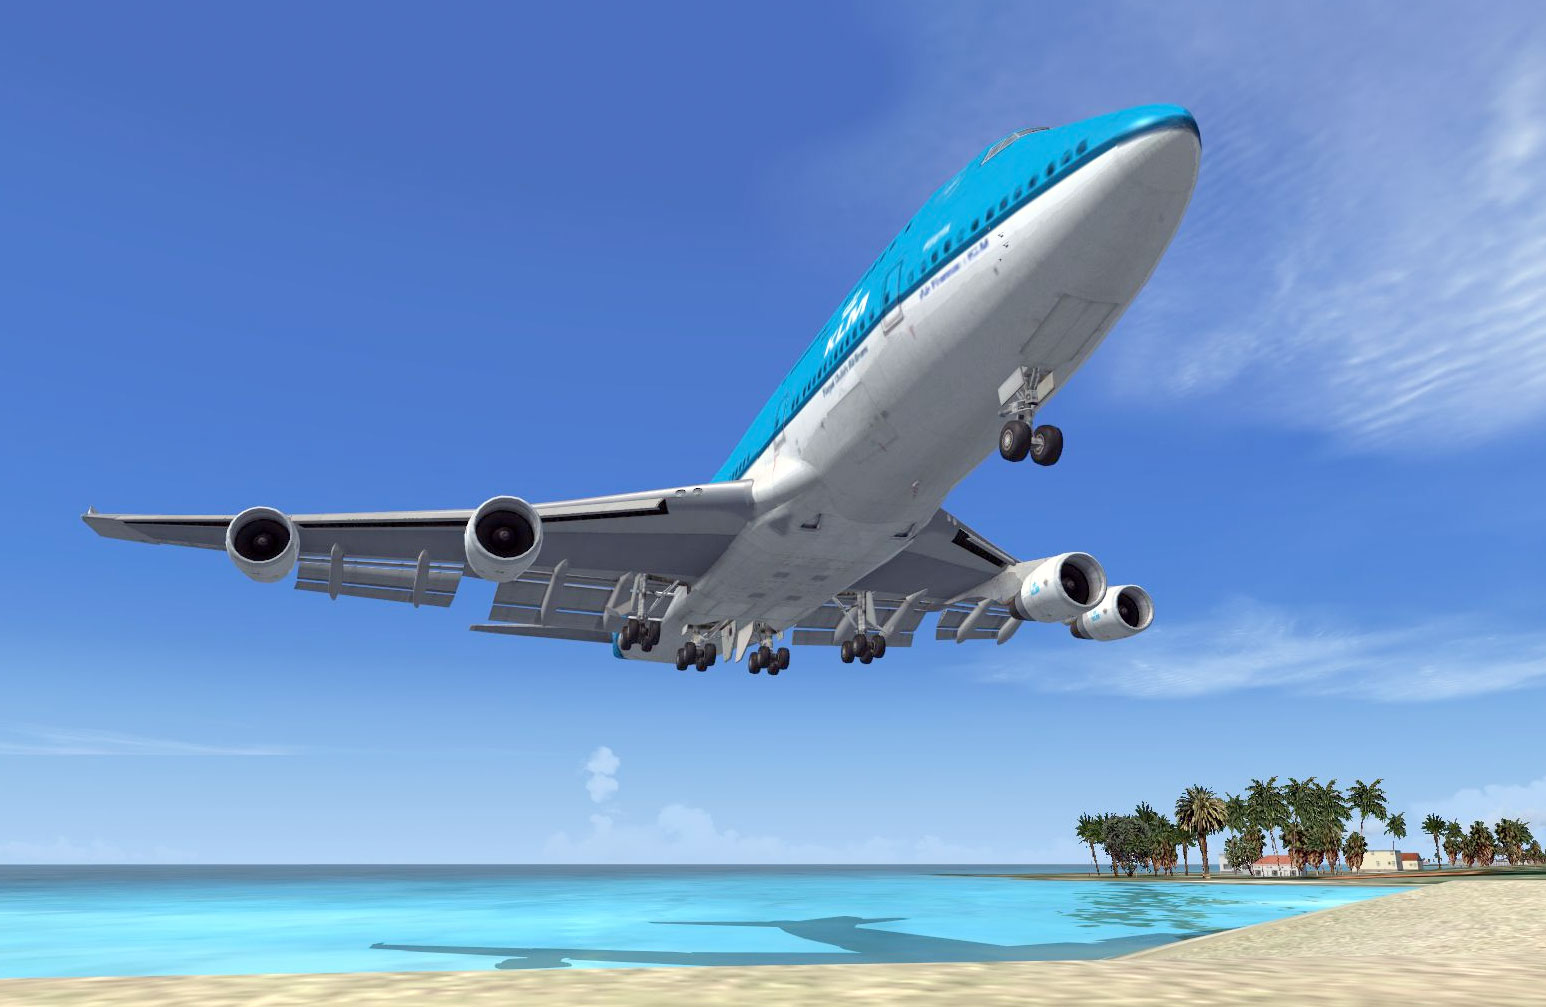 Fsx Planes Free Downloads For Fsx, Fs2004 & X-plane - Flight